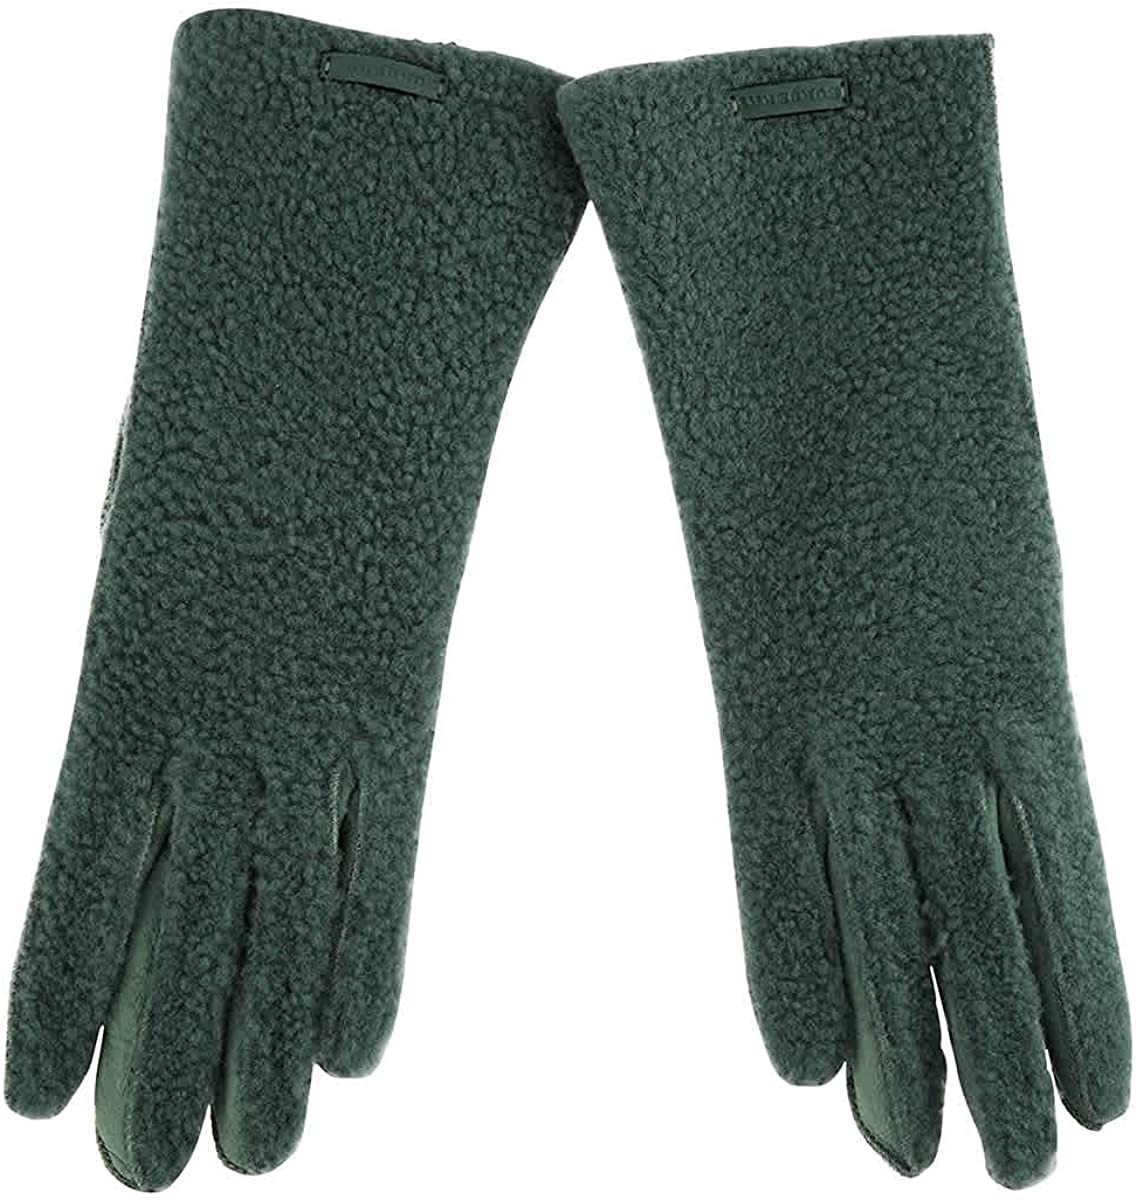 Max 66% OFF Burberry Green Shearling And Leather Gloves Cheap 7.5 Size Brand